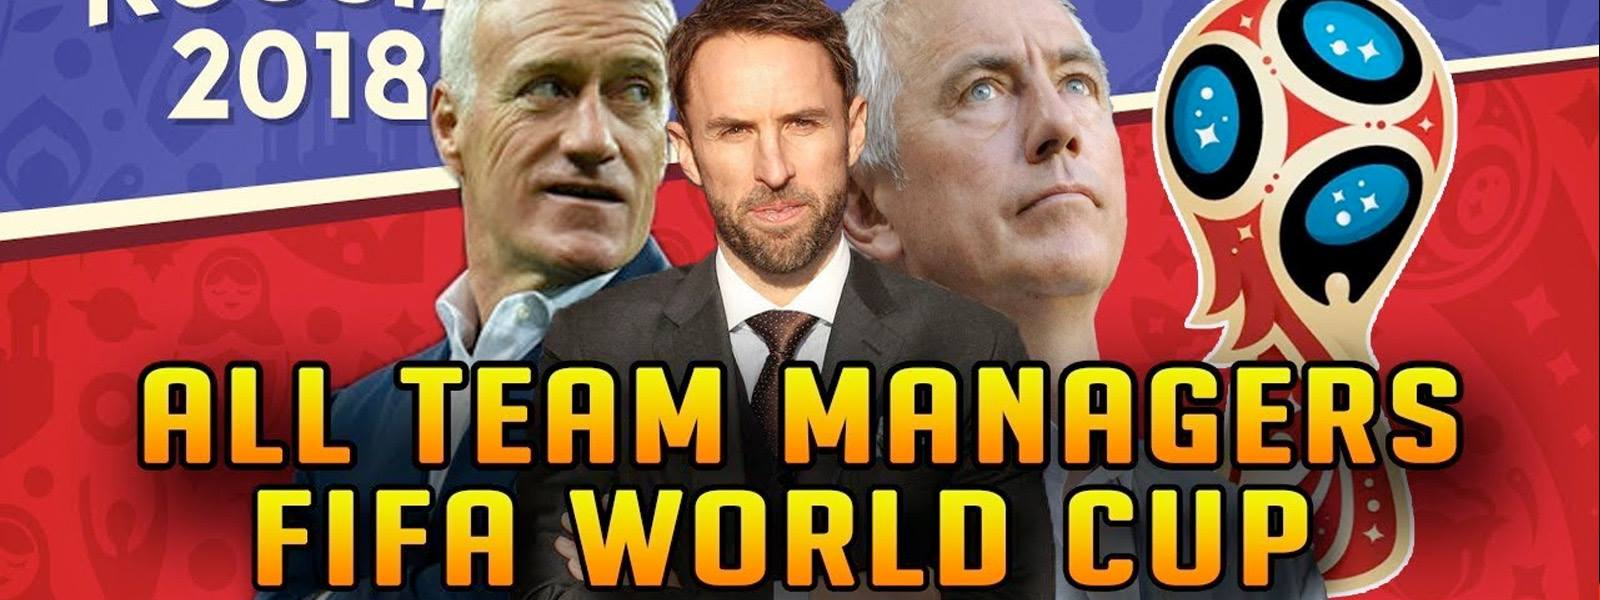 Odds On the Managers Who will Get Sacked After The World Cup 2018